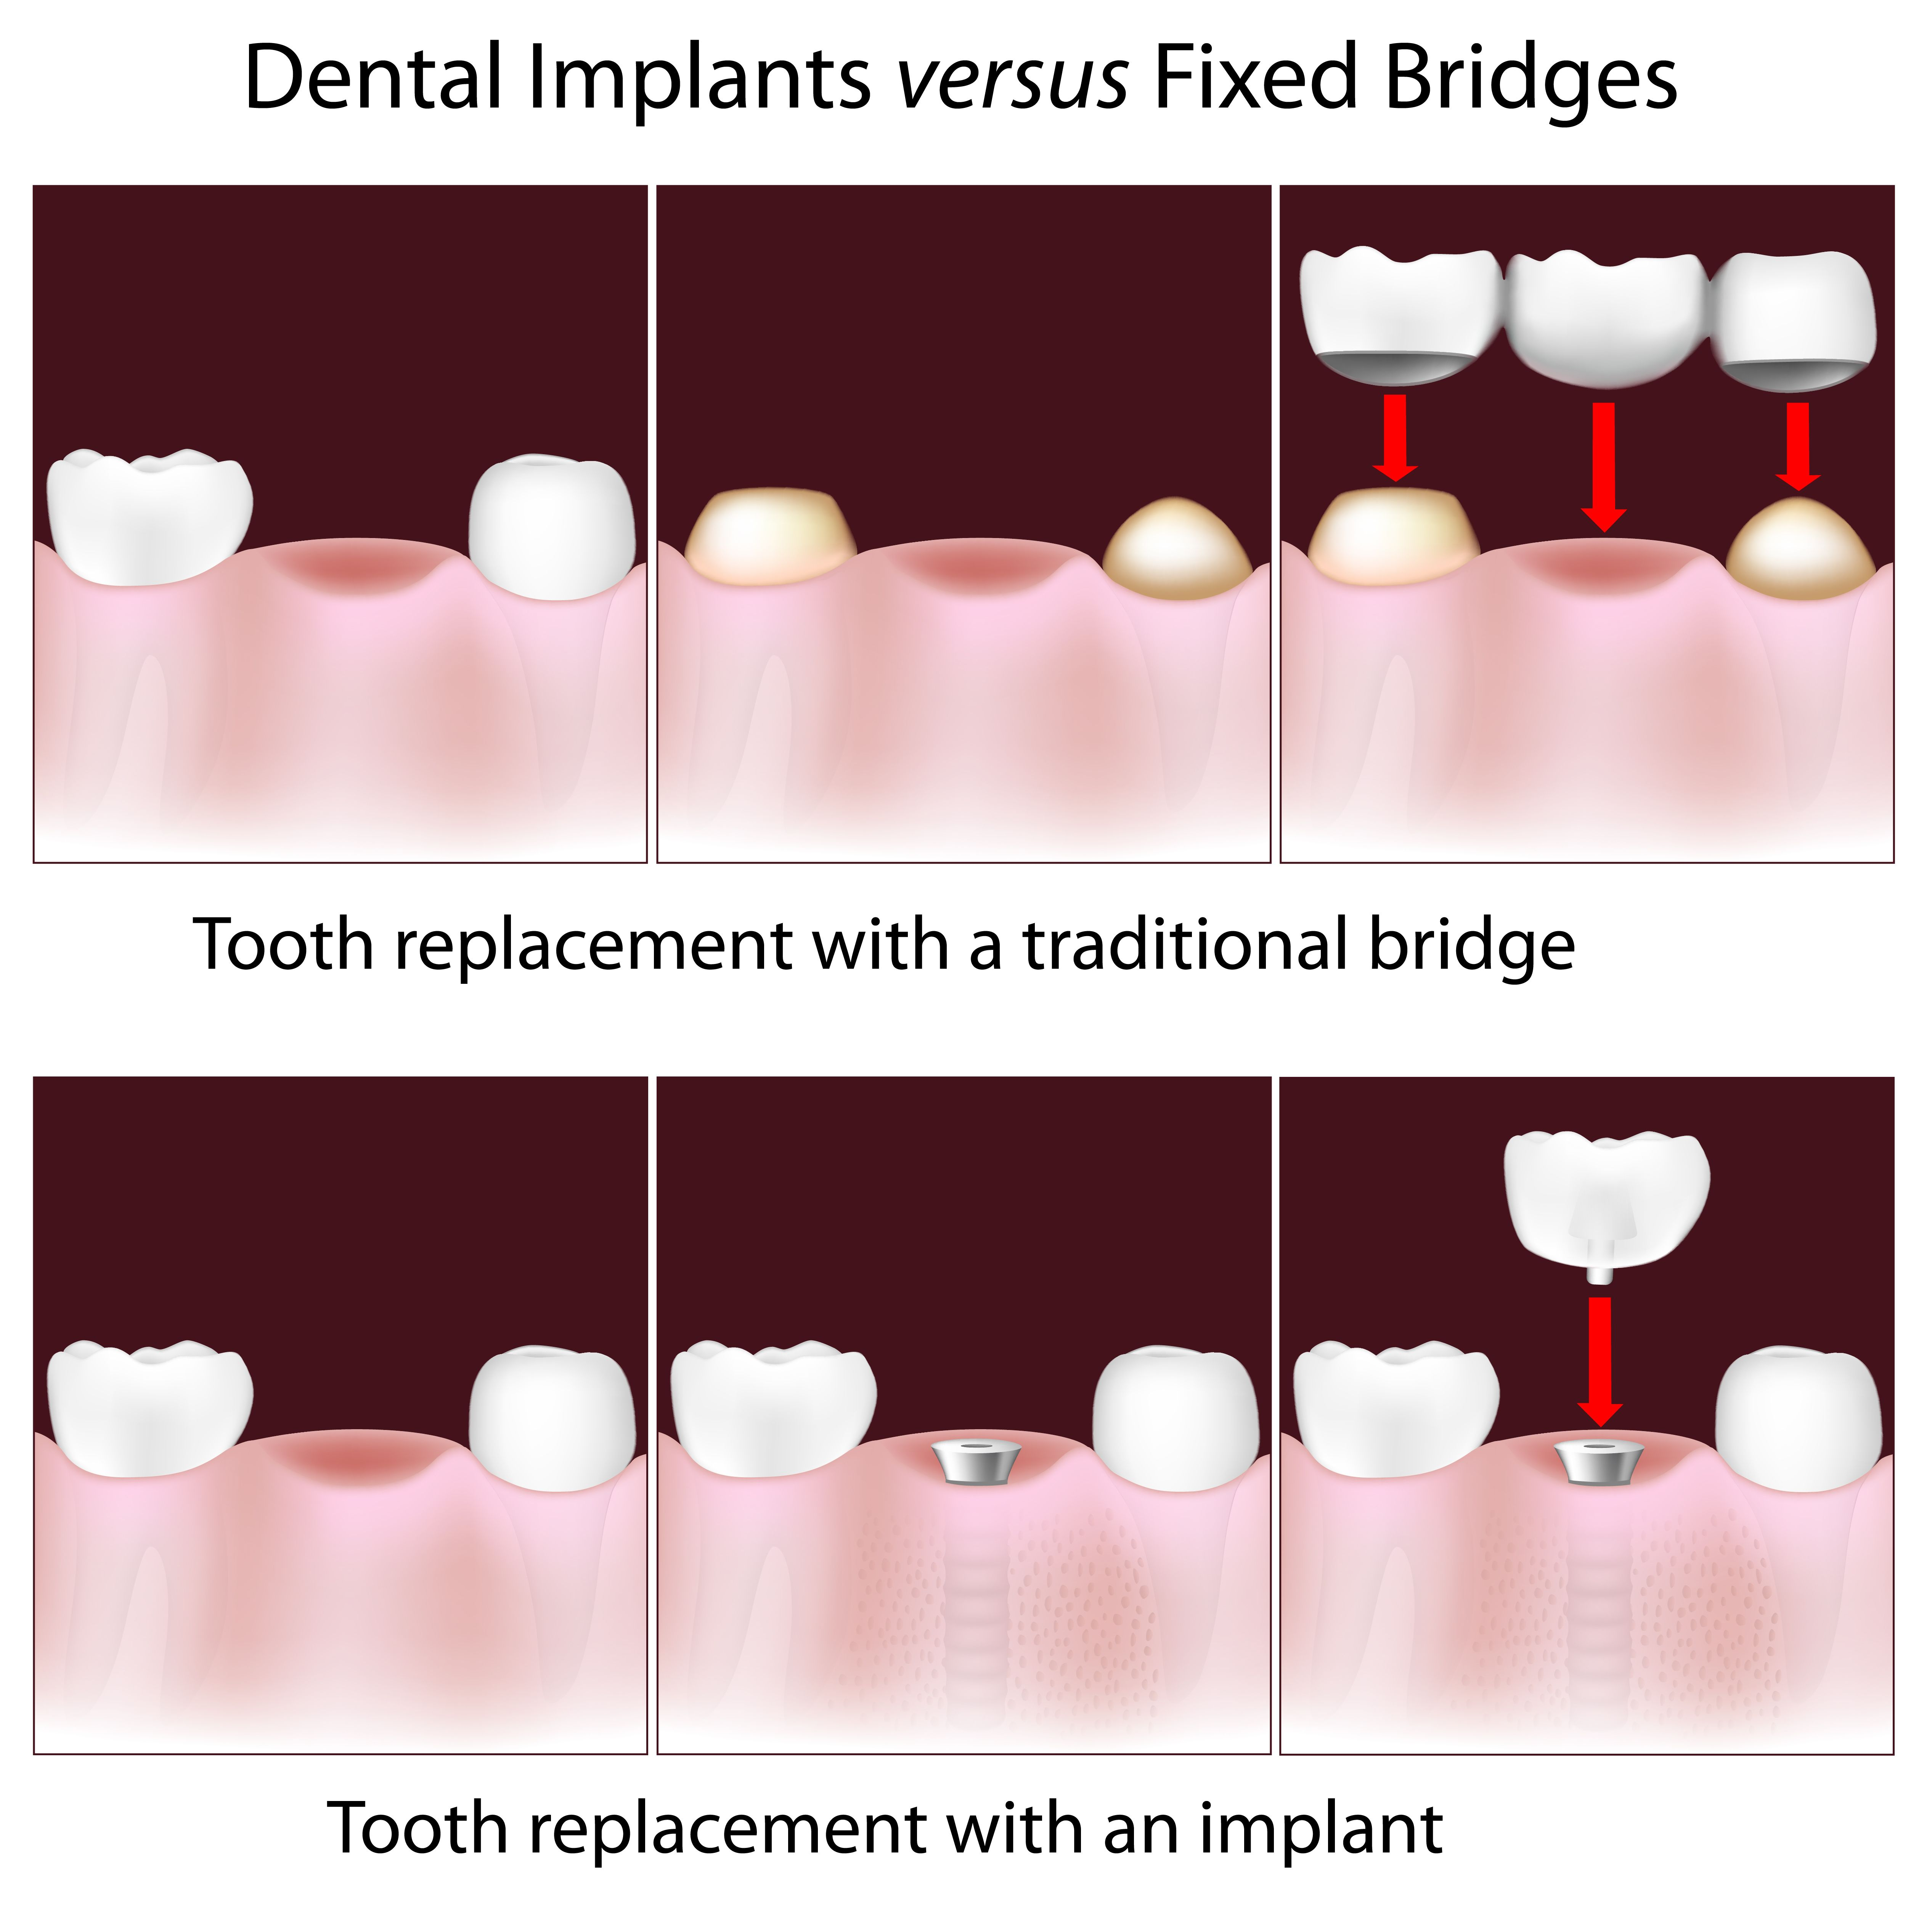 Illustration of a traditional vs implant-supported bridge